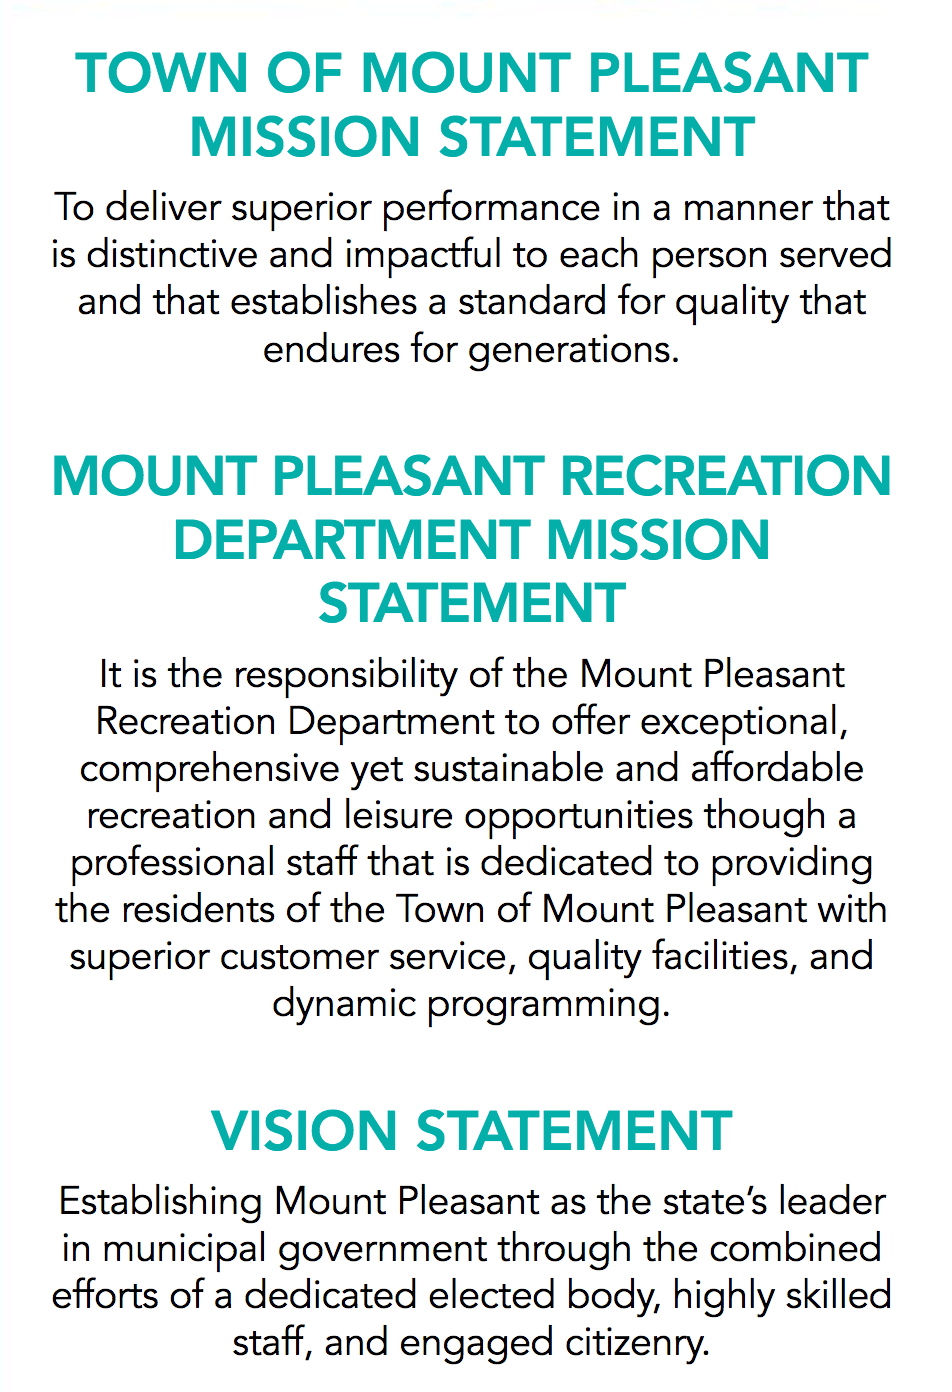 Mission Statements